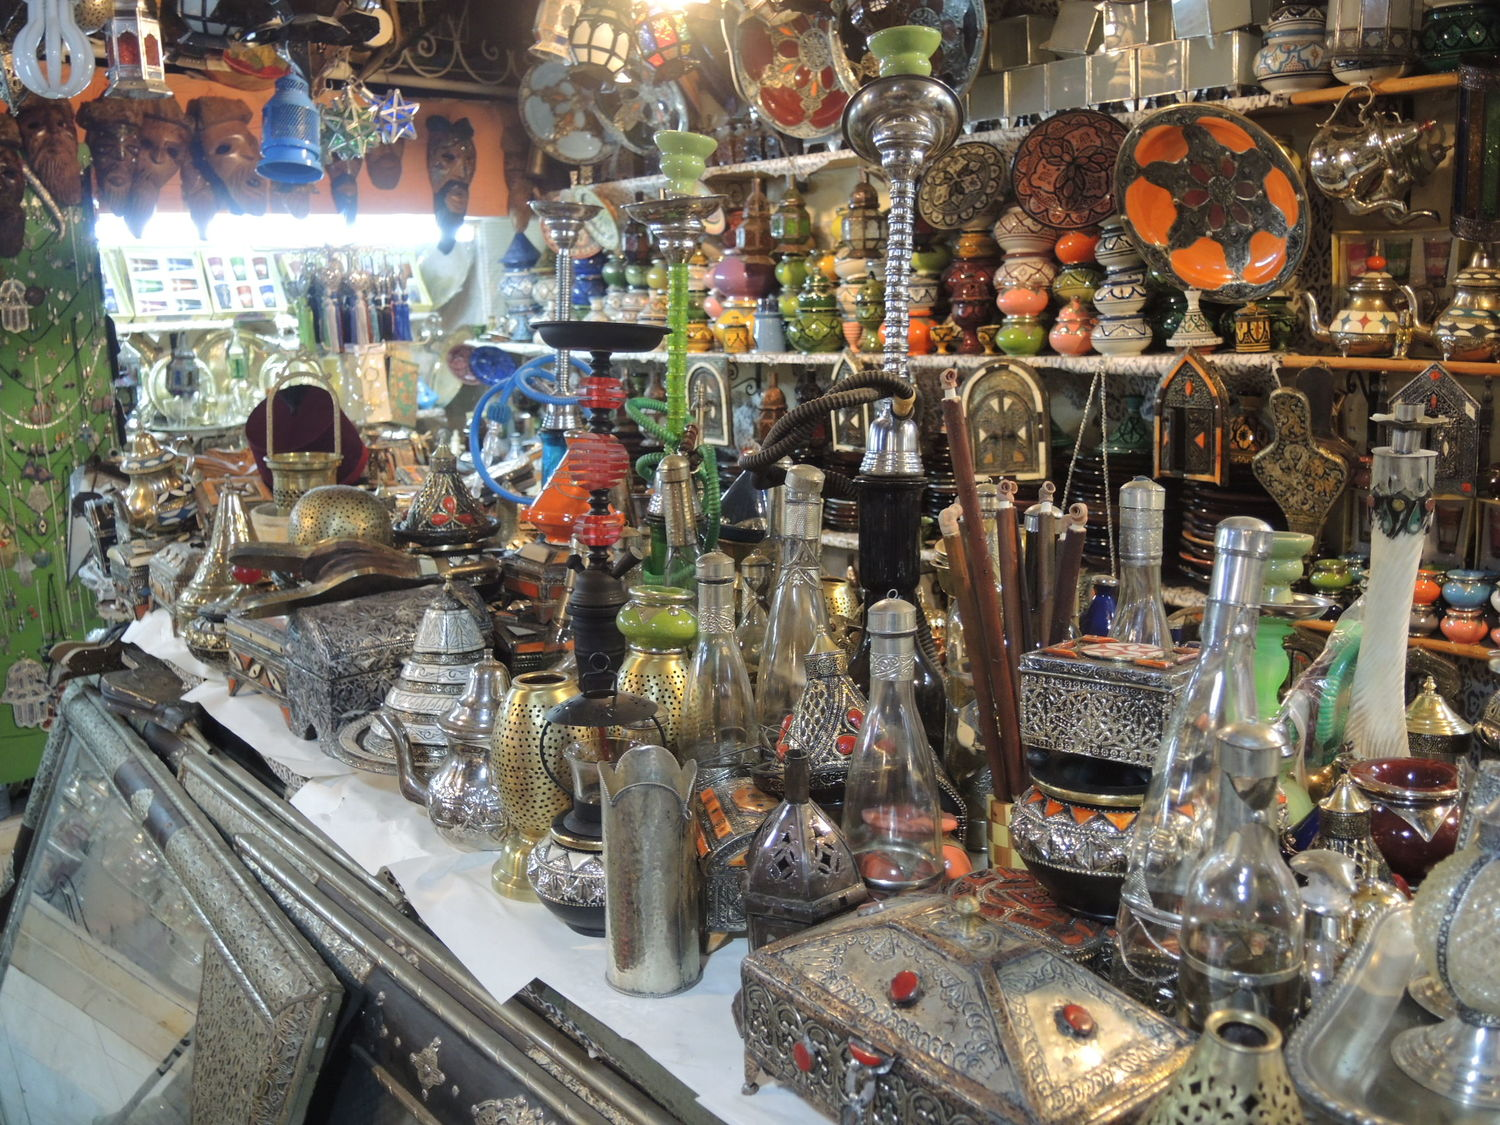 Souvenirs in Marrakech